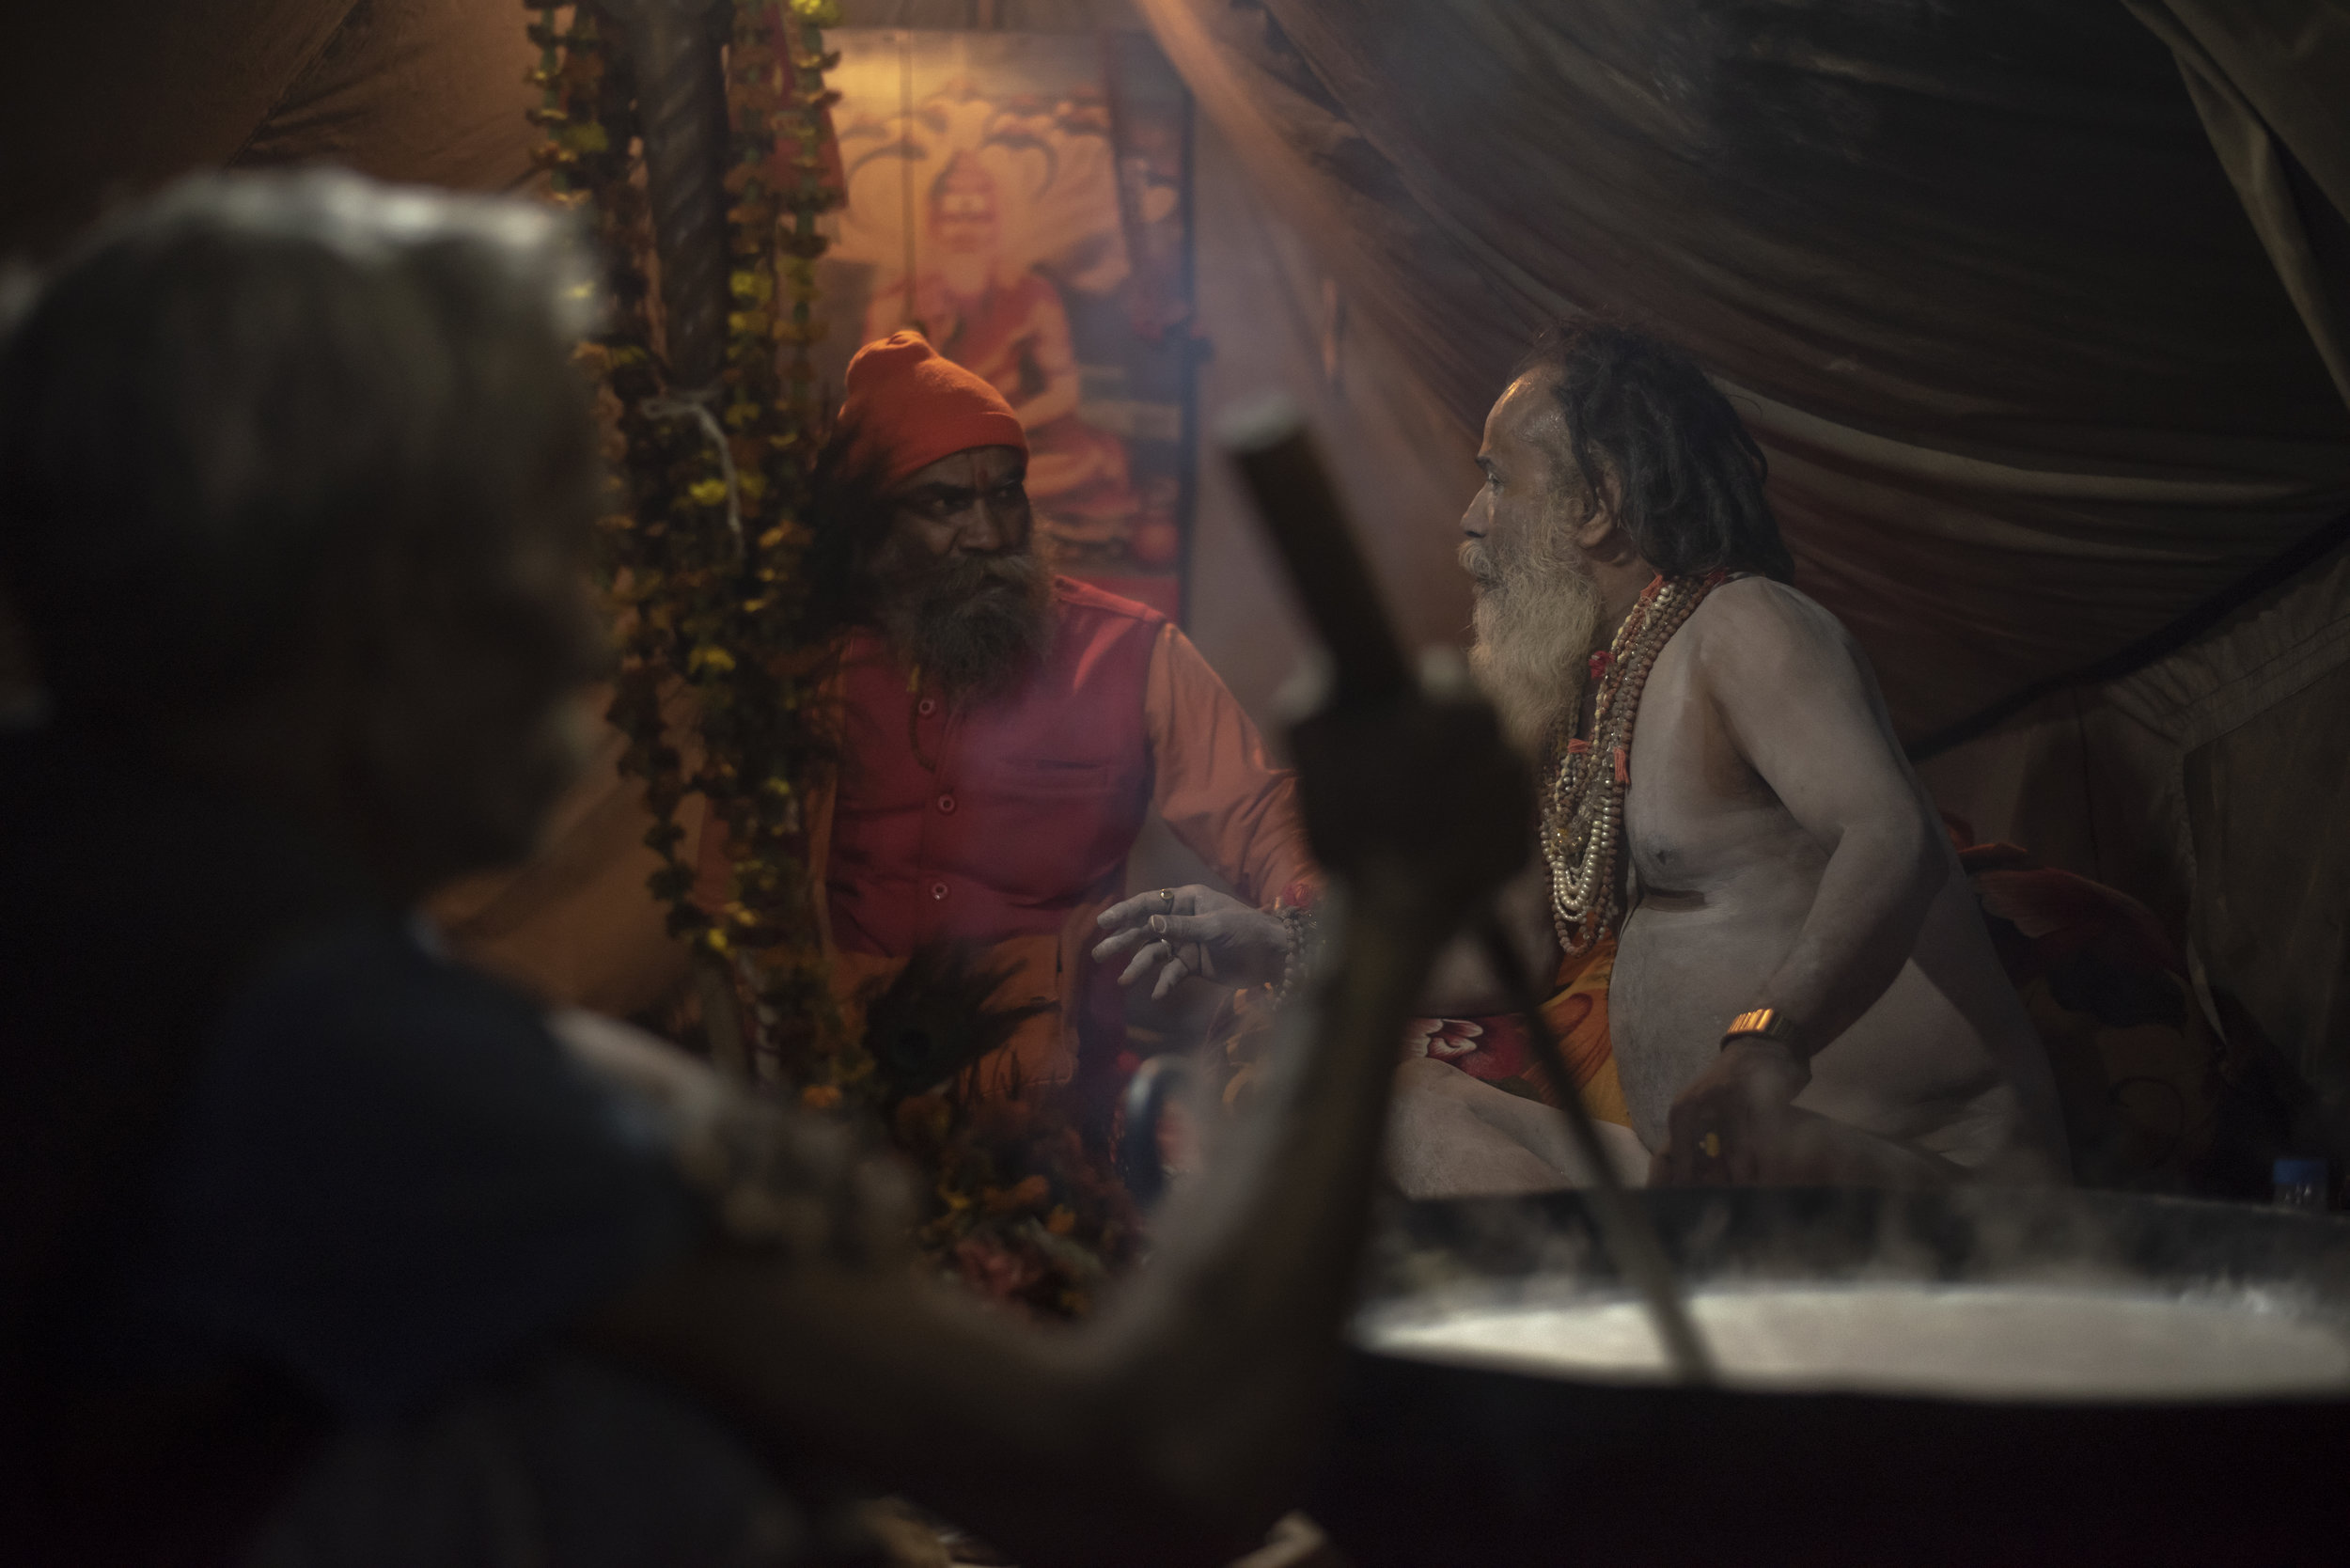 Two sadhu's (Hindu sages/priests) converse while a man stirs a giant kettle of milk representing the Samudra Manthan, an auspicious ocean of milk from Vedic mythology.